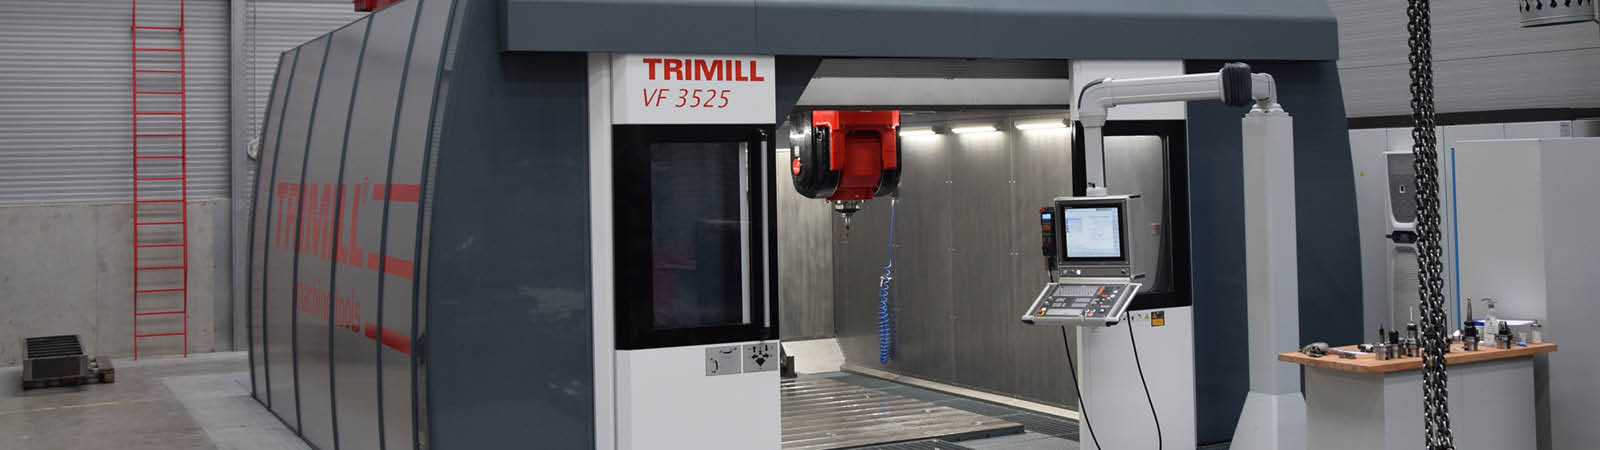 Trimill_CNC_milling machine - prototyping